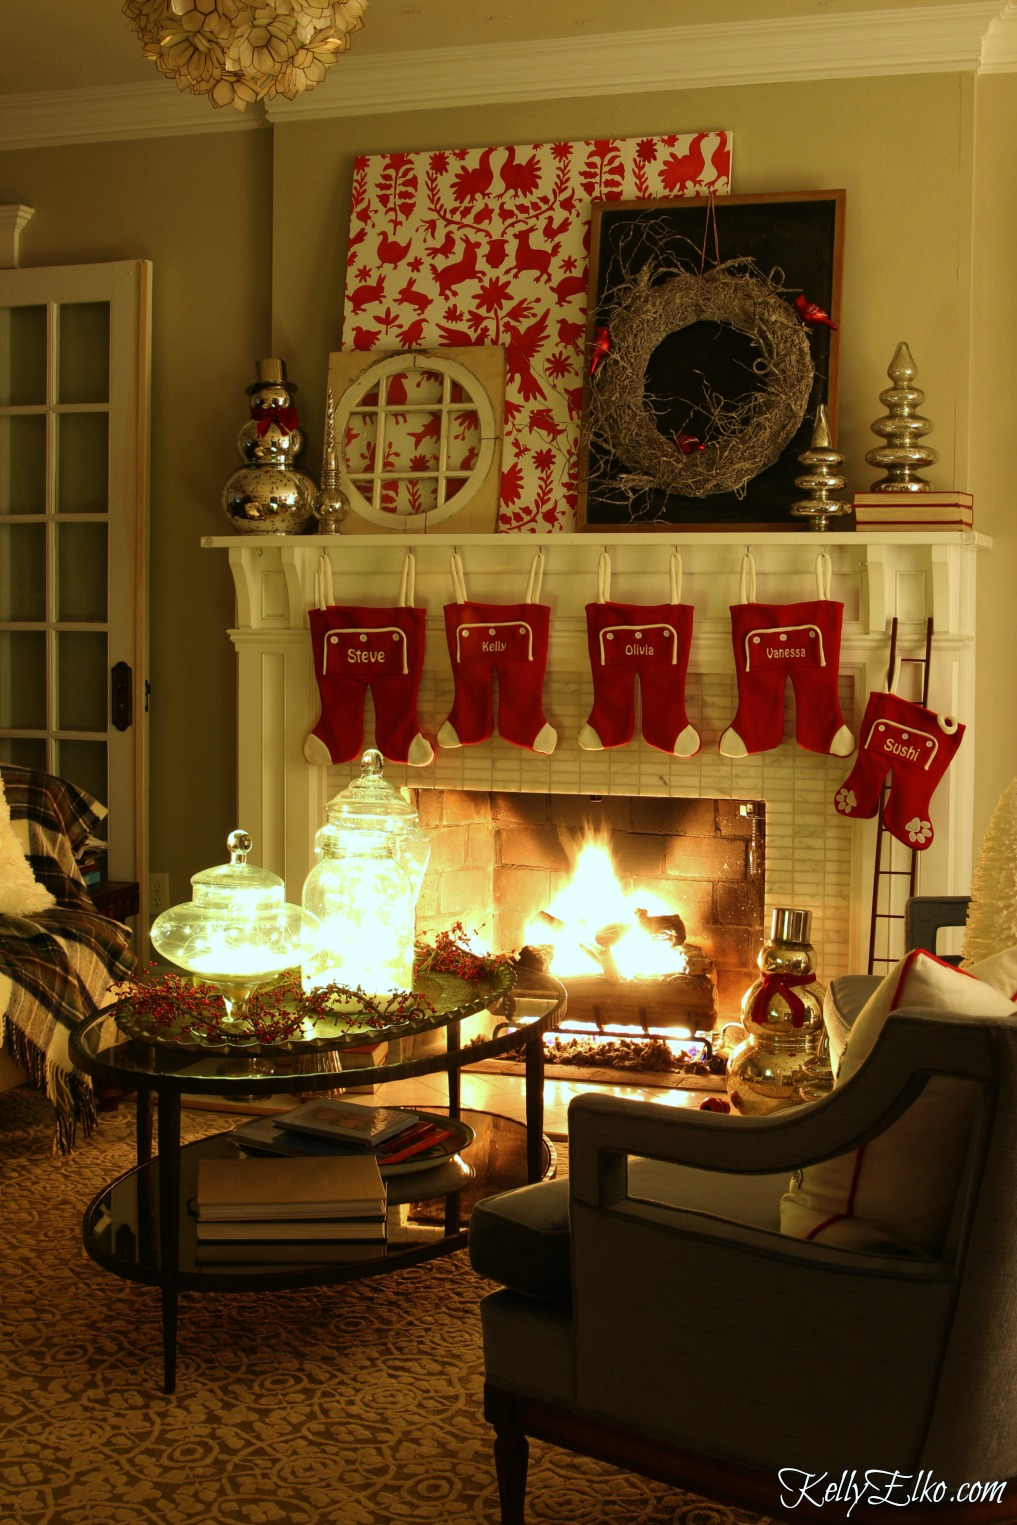 Christmas Lights at Night Home Tours - 35 homes by the glow of light - love this gorgeous mantel kellyelko.com